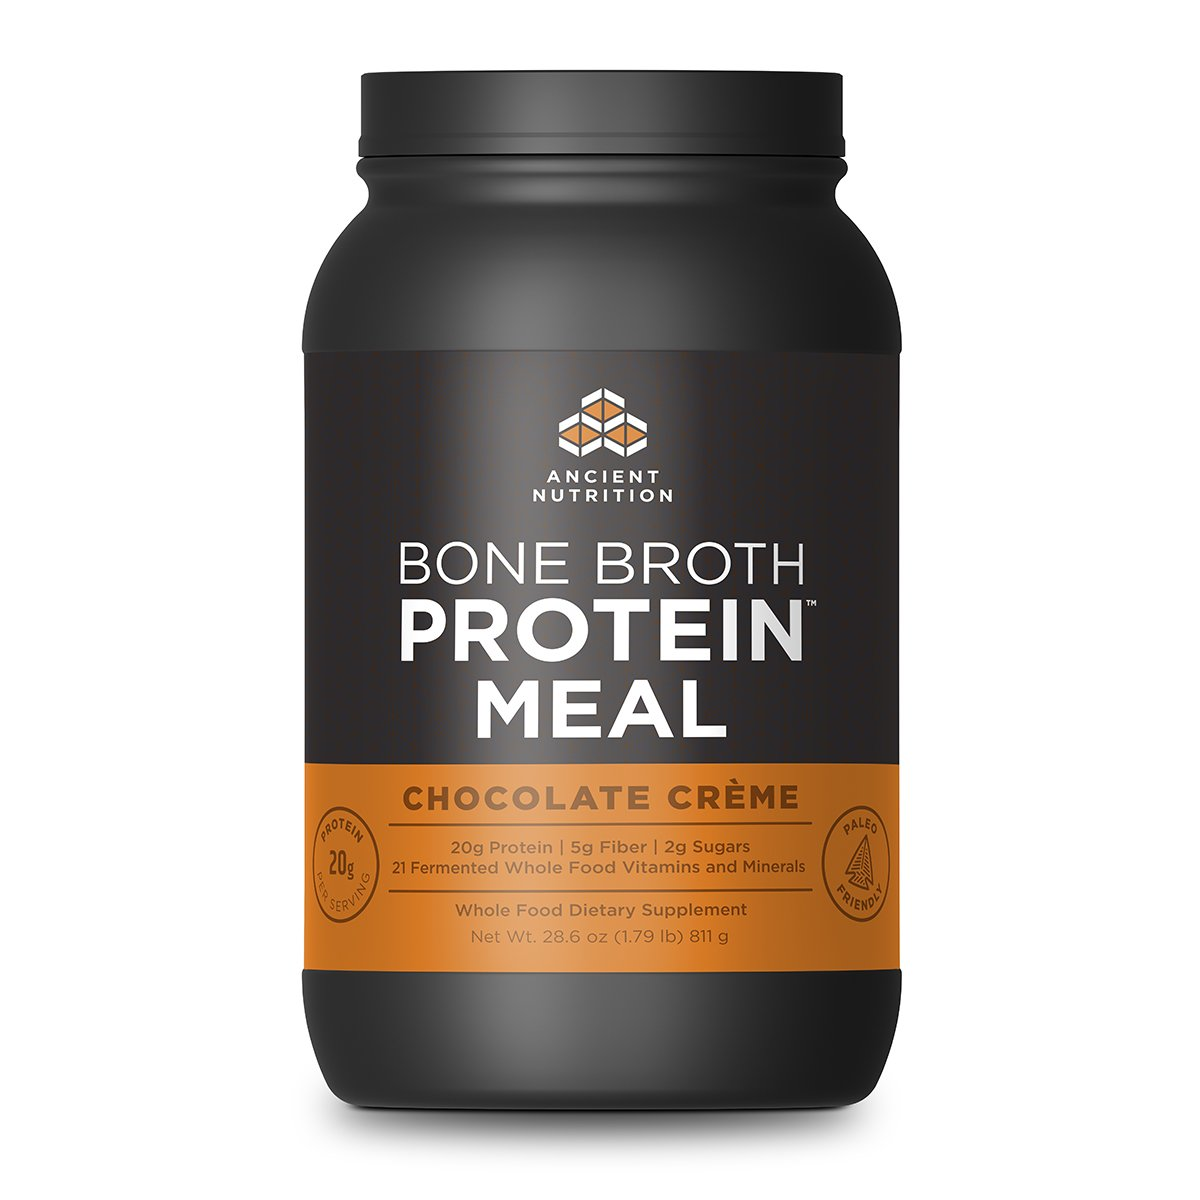 Ancient Nutrition Bone Broth Protein MEAL, Chocolate Crème Flavor, 20 Servings Size - All Natural Meal Replacement Shake with 21 Whole Food Vitamins and Minerals by Ancient Nutrition